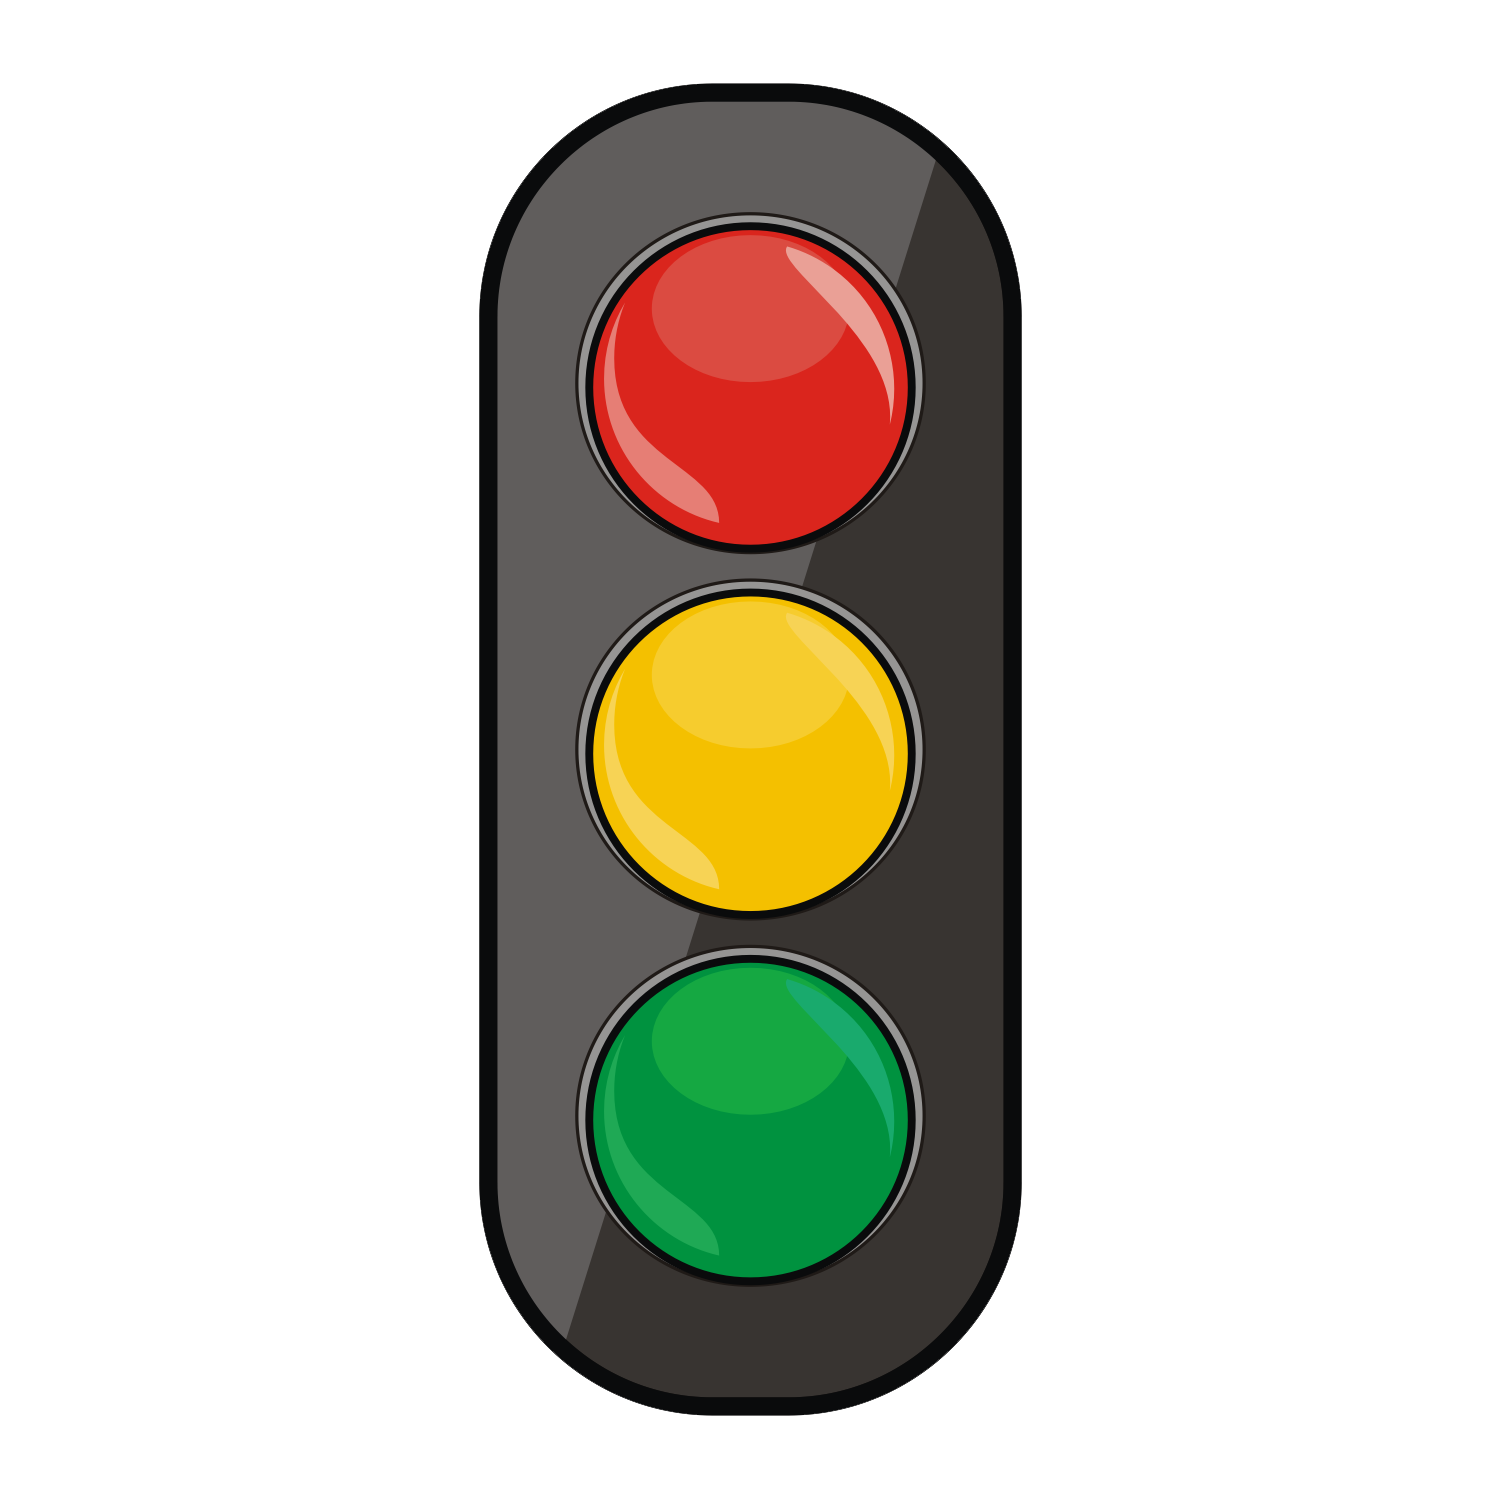 black and white download Stoplight clipart source light.  great yellow traffic